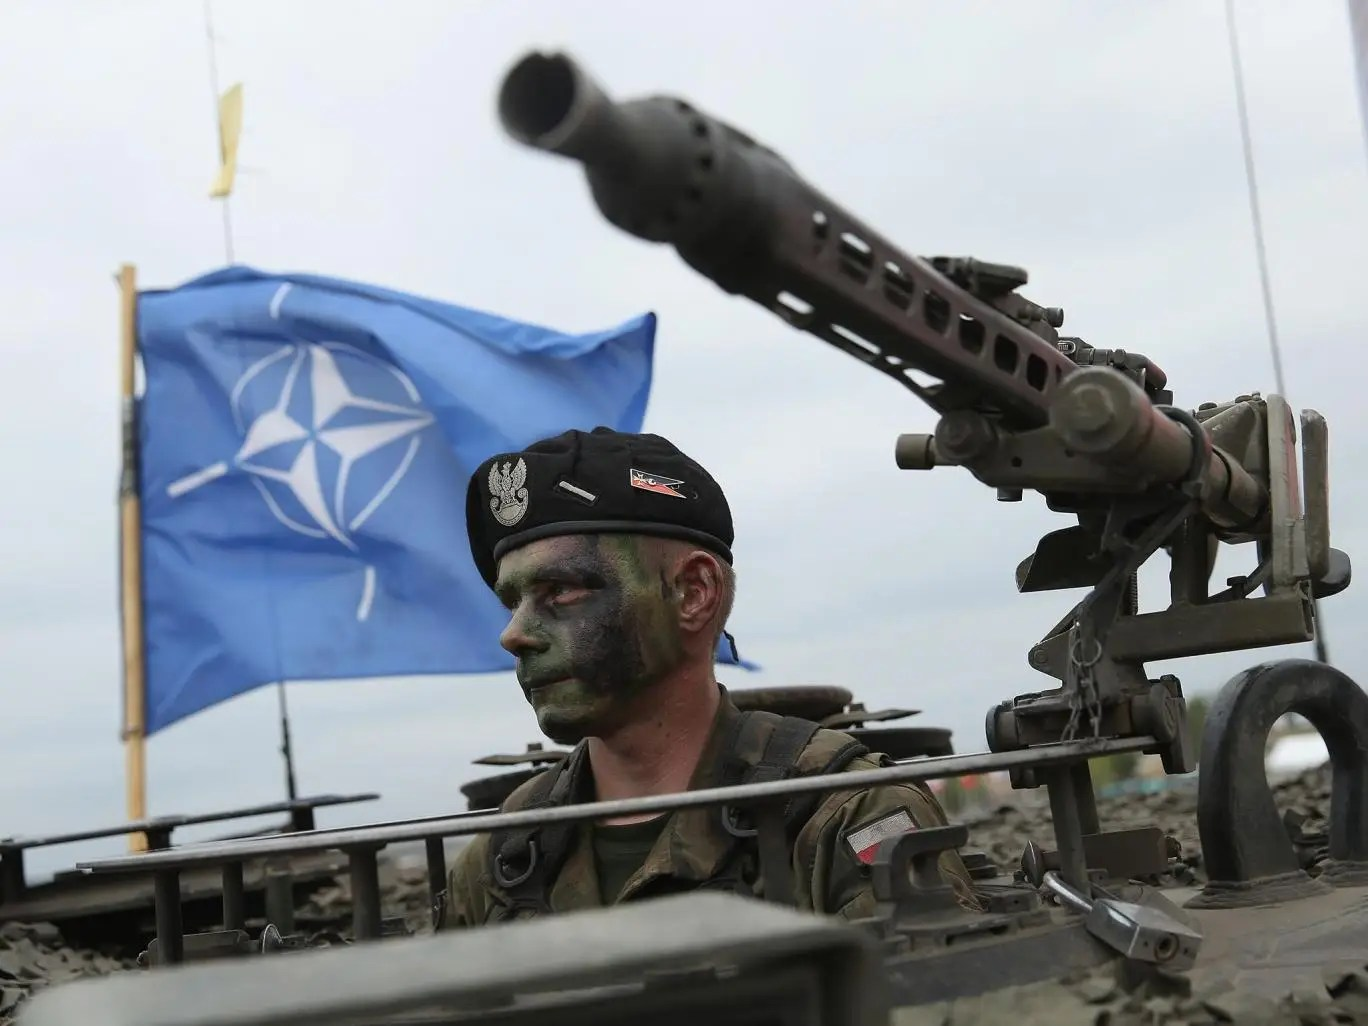 https://i2.wp.com/static.independent.co.uk/s3fs-public/styles/story_large/public/thumbnails/image/2016/07/26/09/poland-nato.jpg